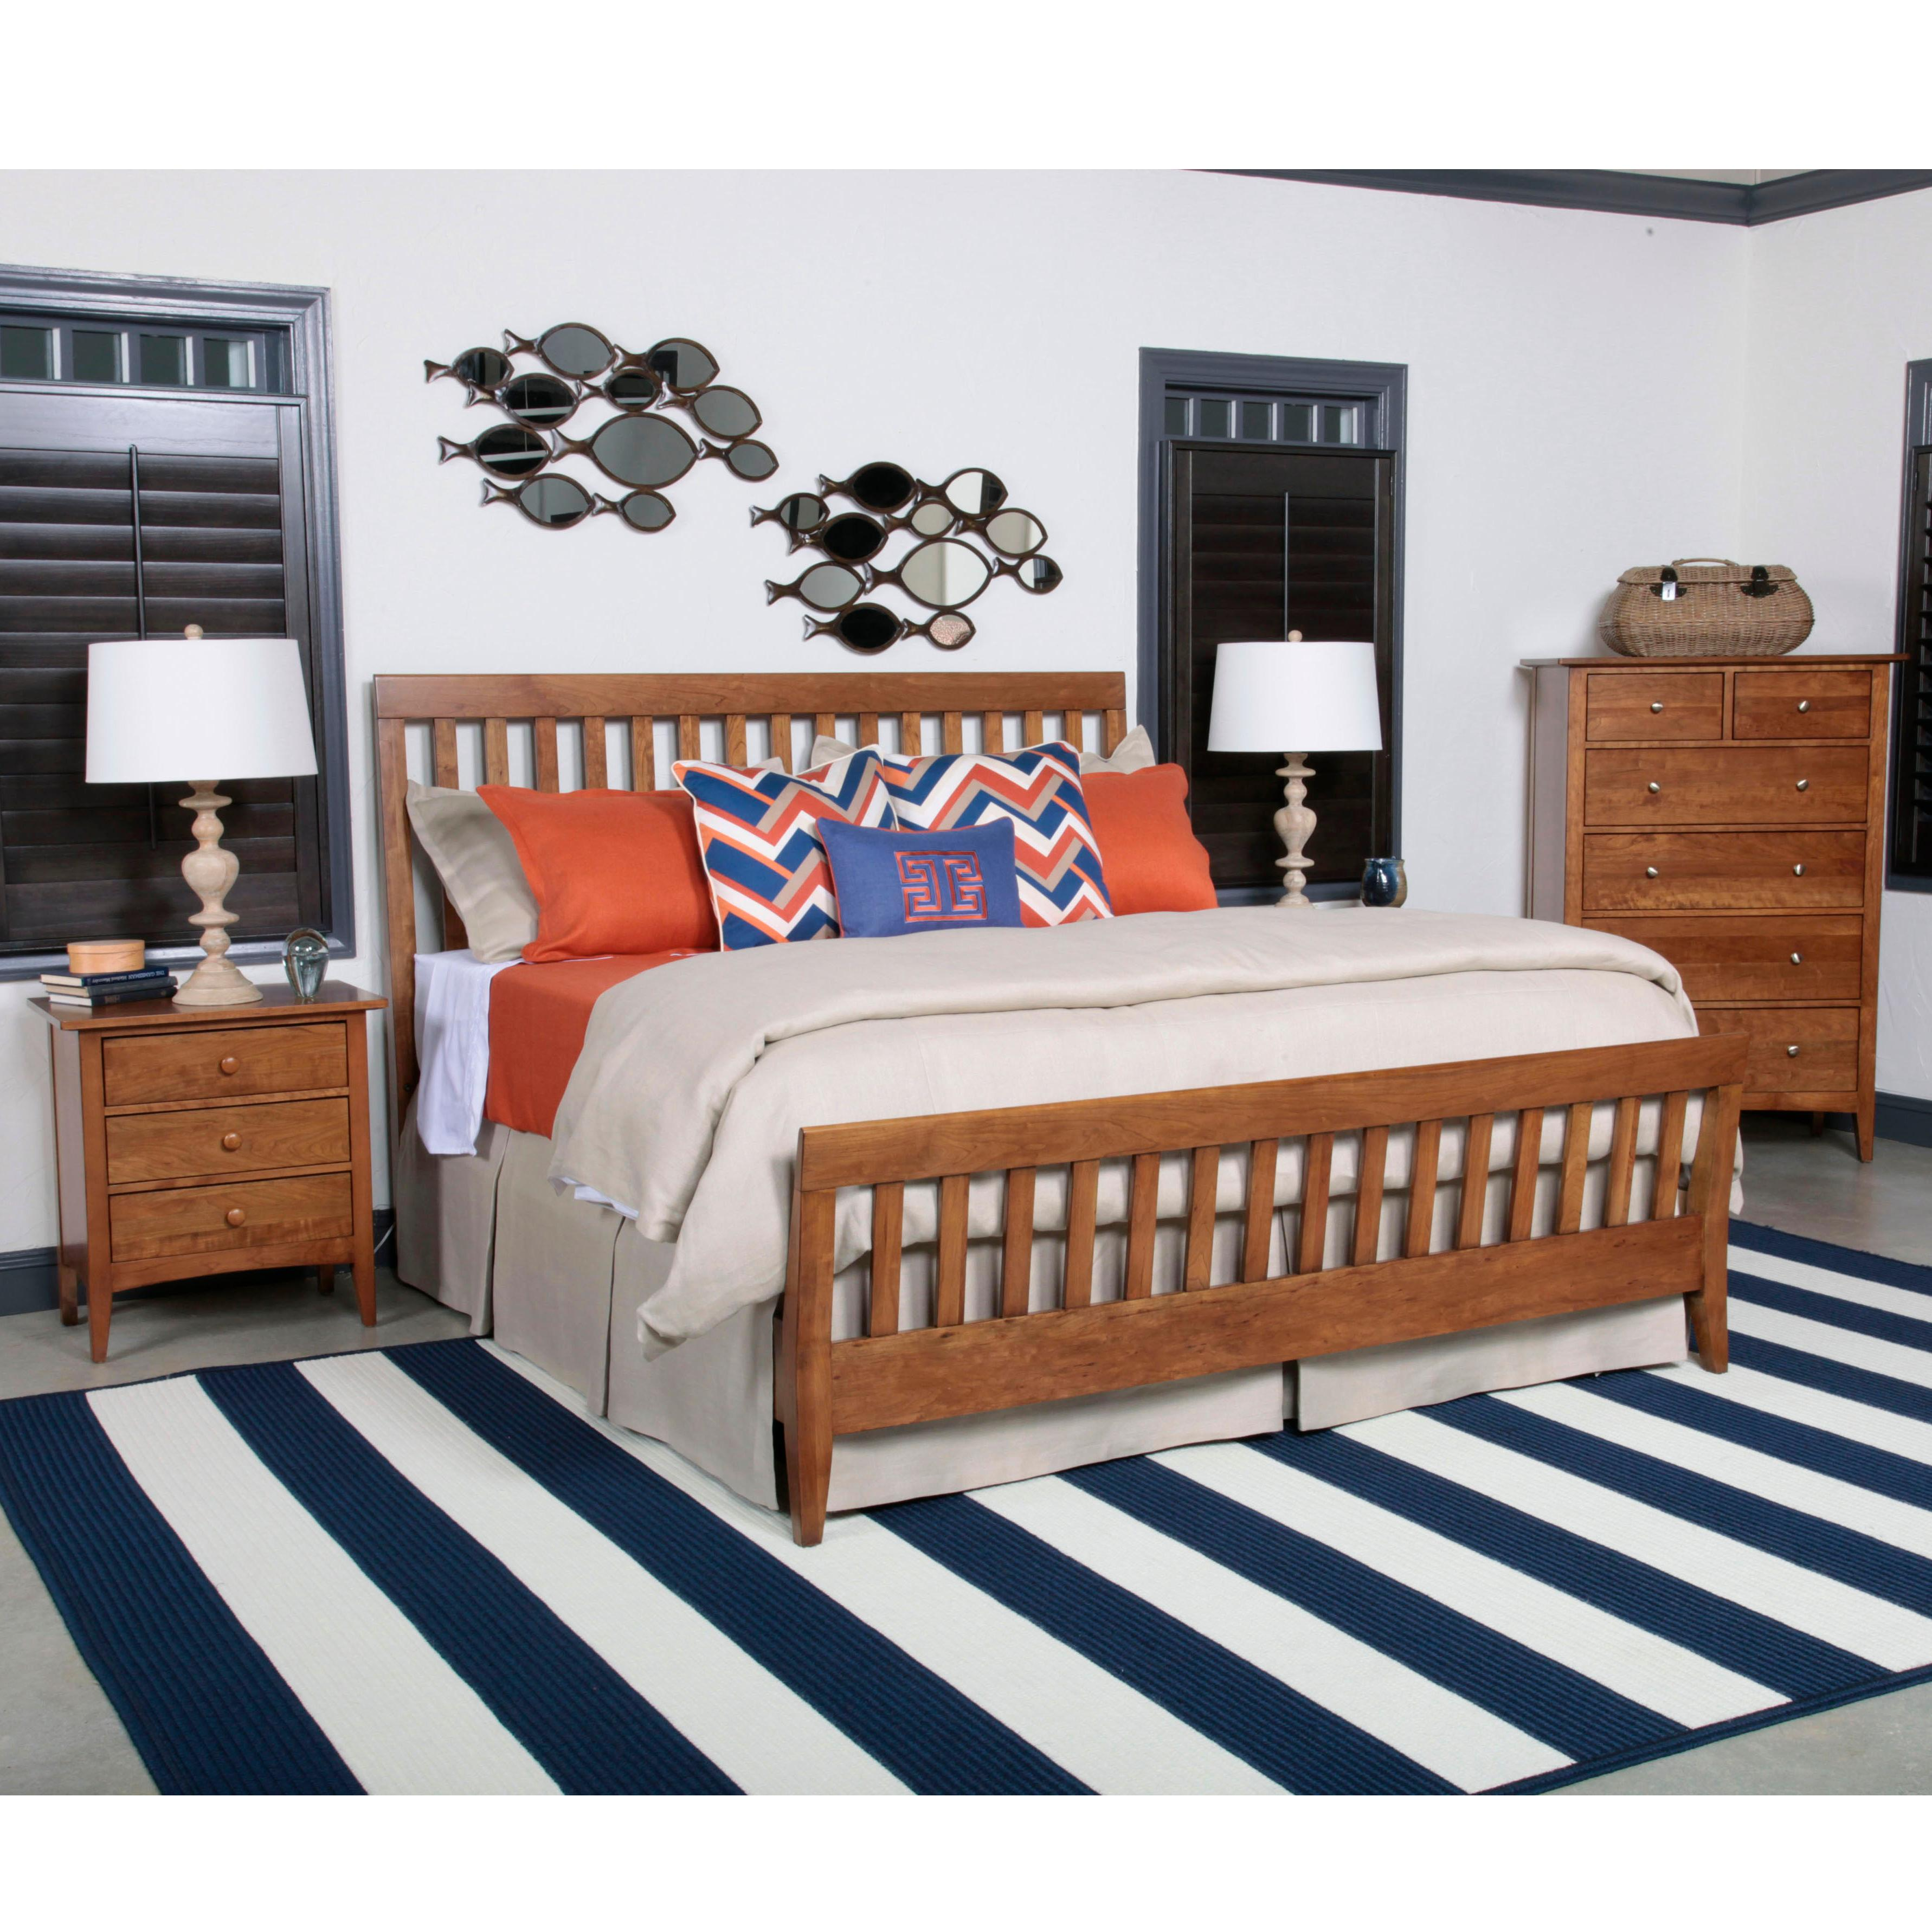 Kincaid Furniture Gatherings K Bedroom Group - Item Number: K Bedroom Group 6